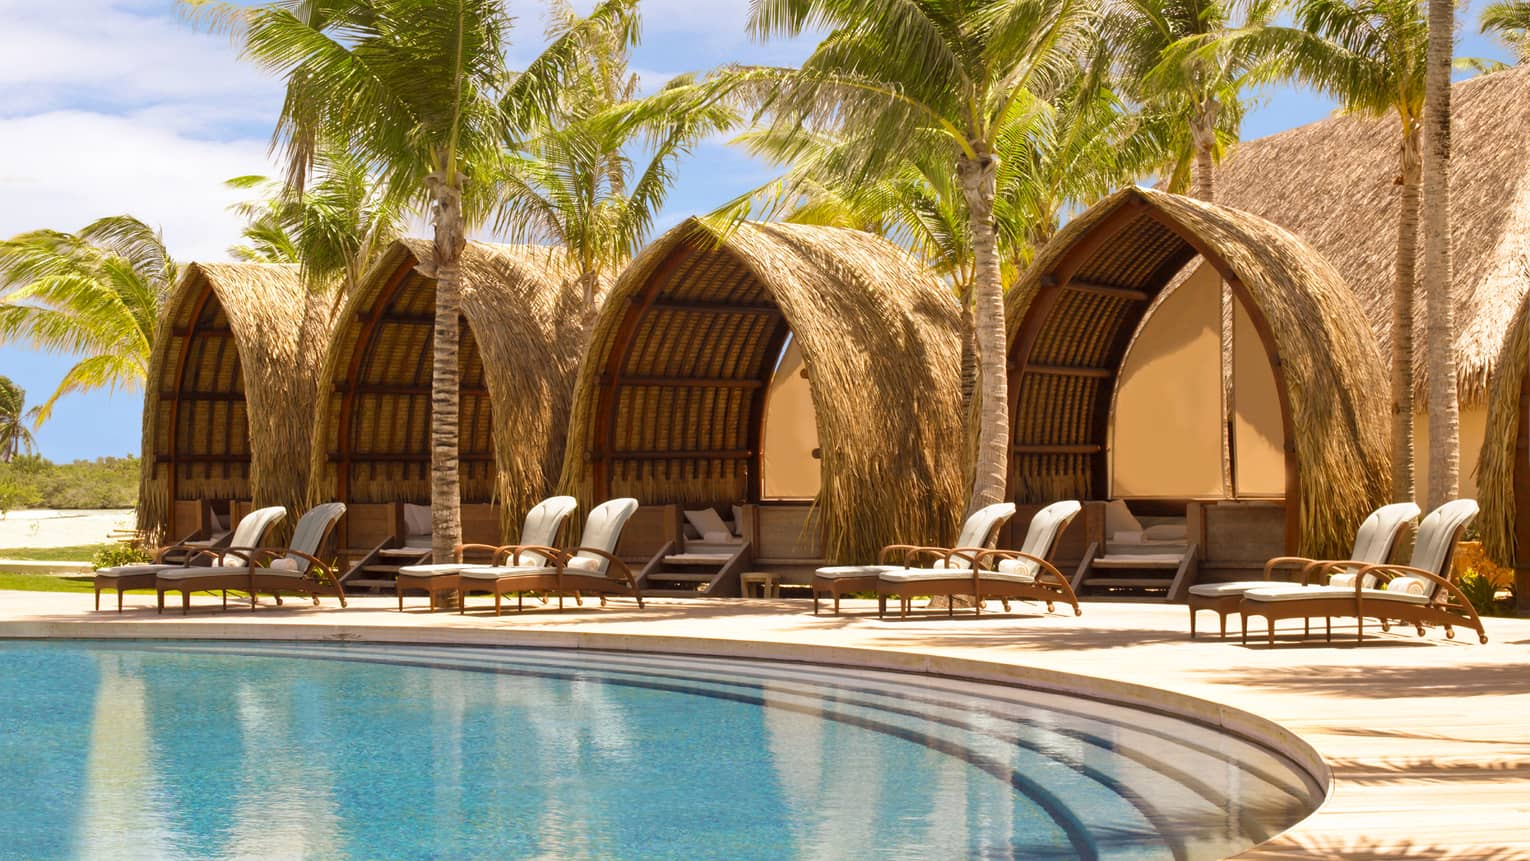 Four poolside pavilions with thatched roofs behind white lounge chairs, steps leading into swimming pool